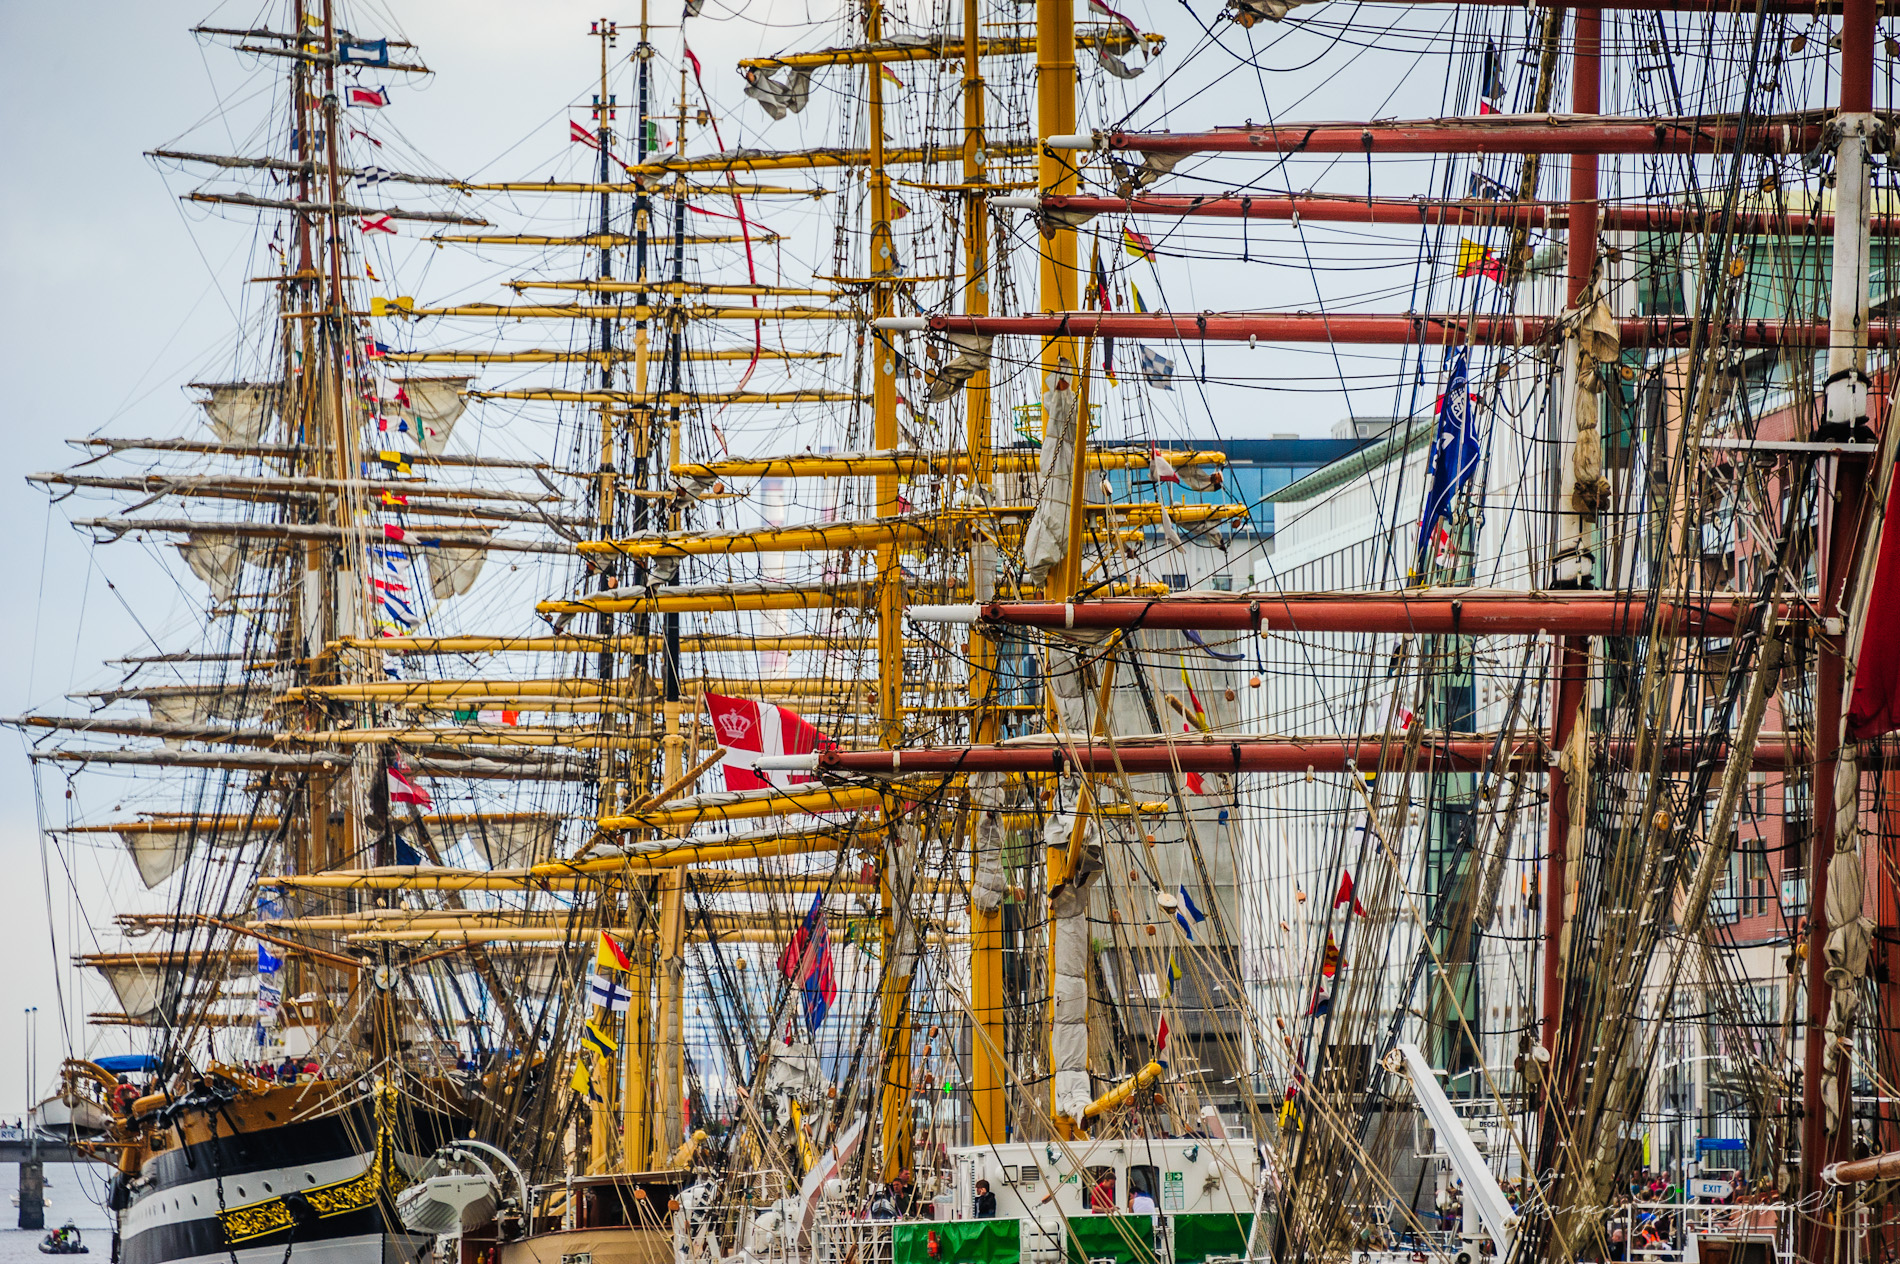 Masts of the Tall Ships